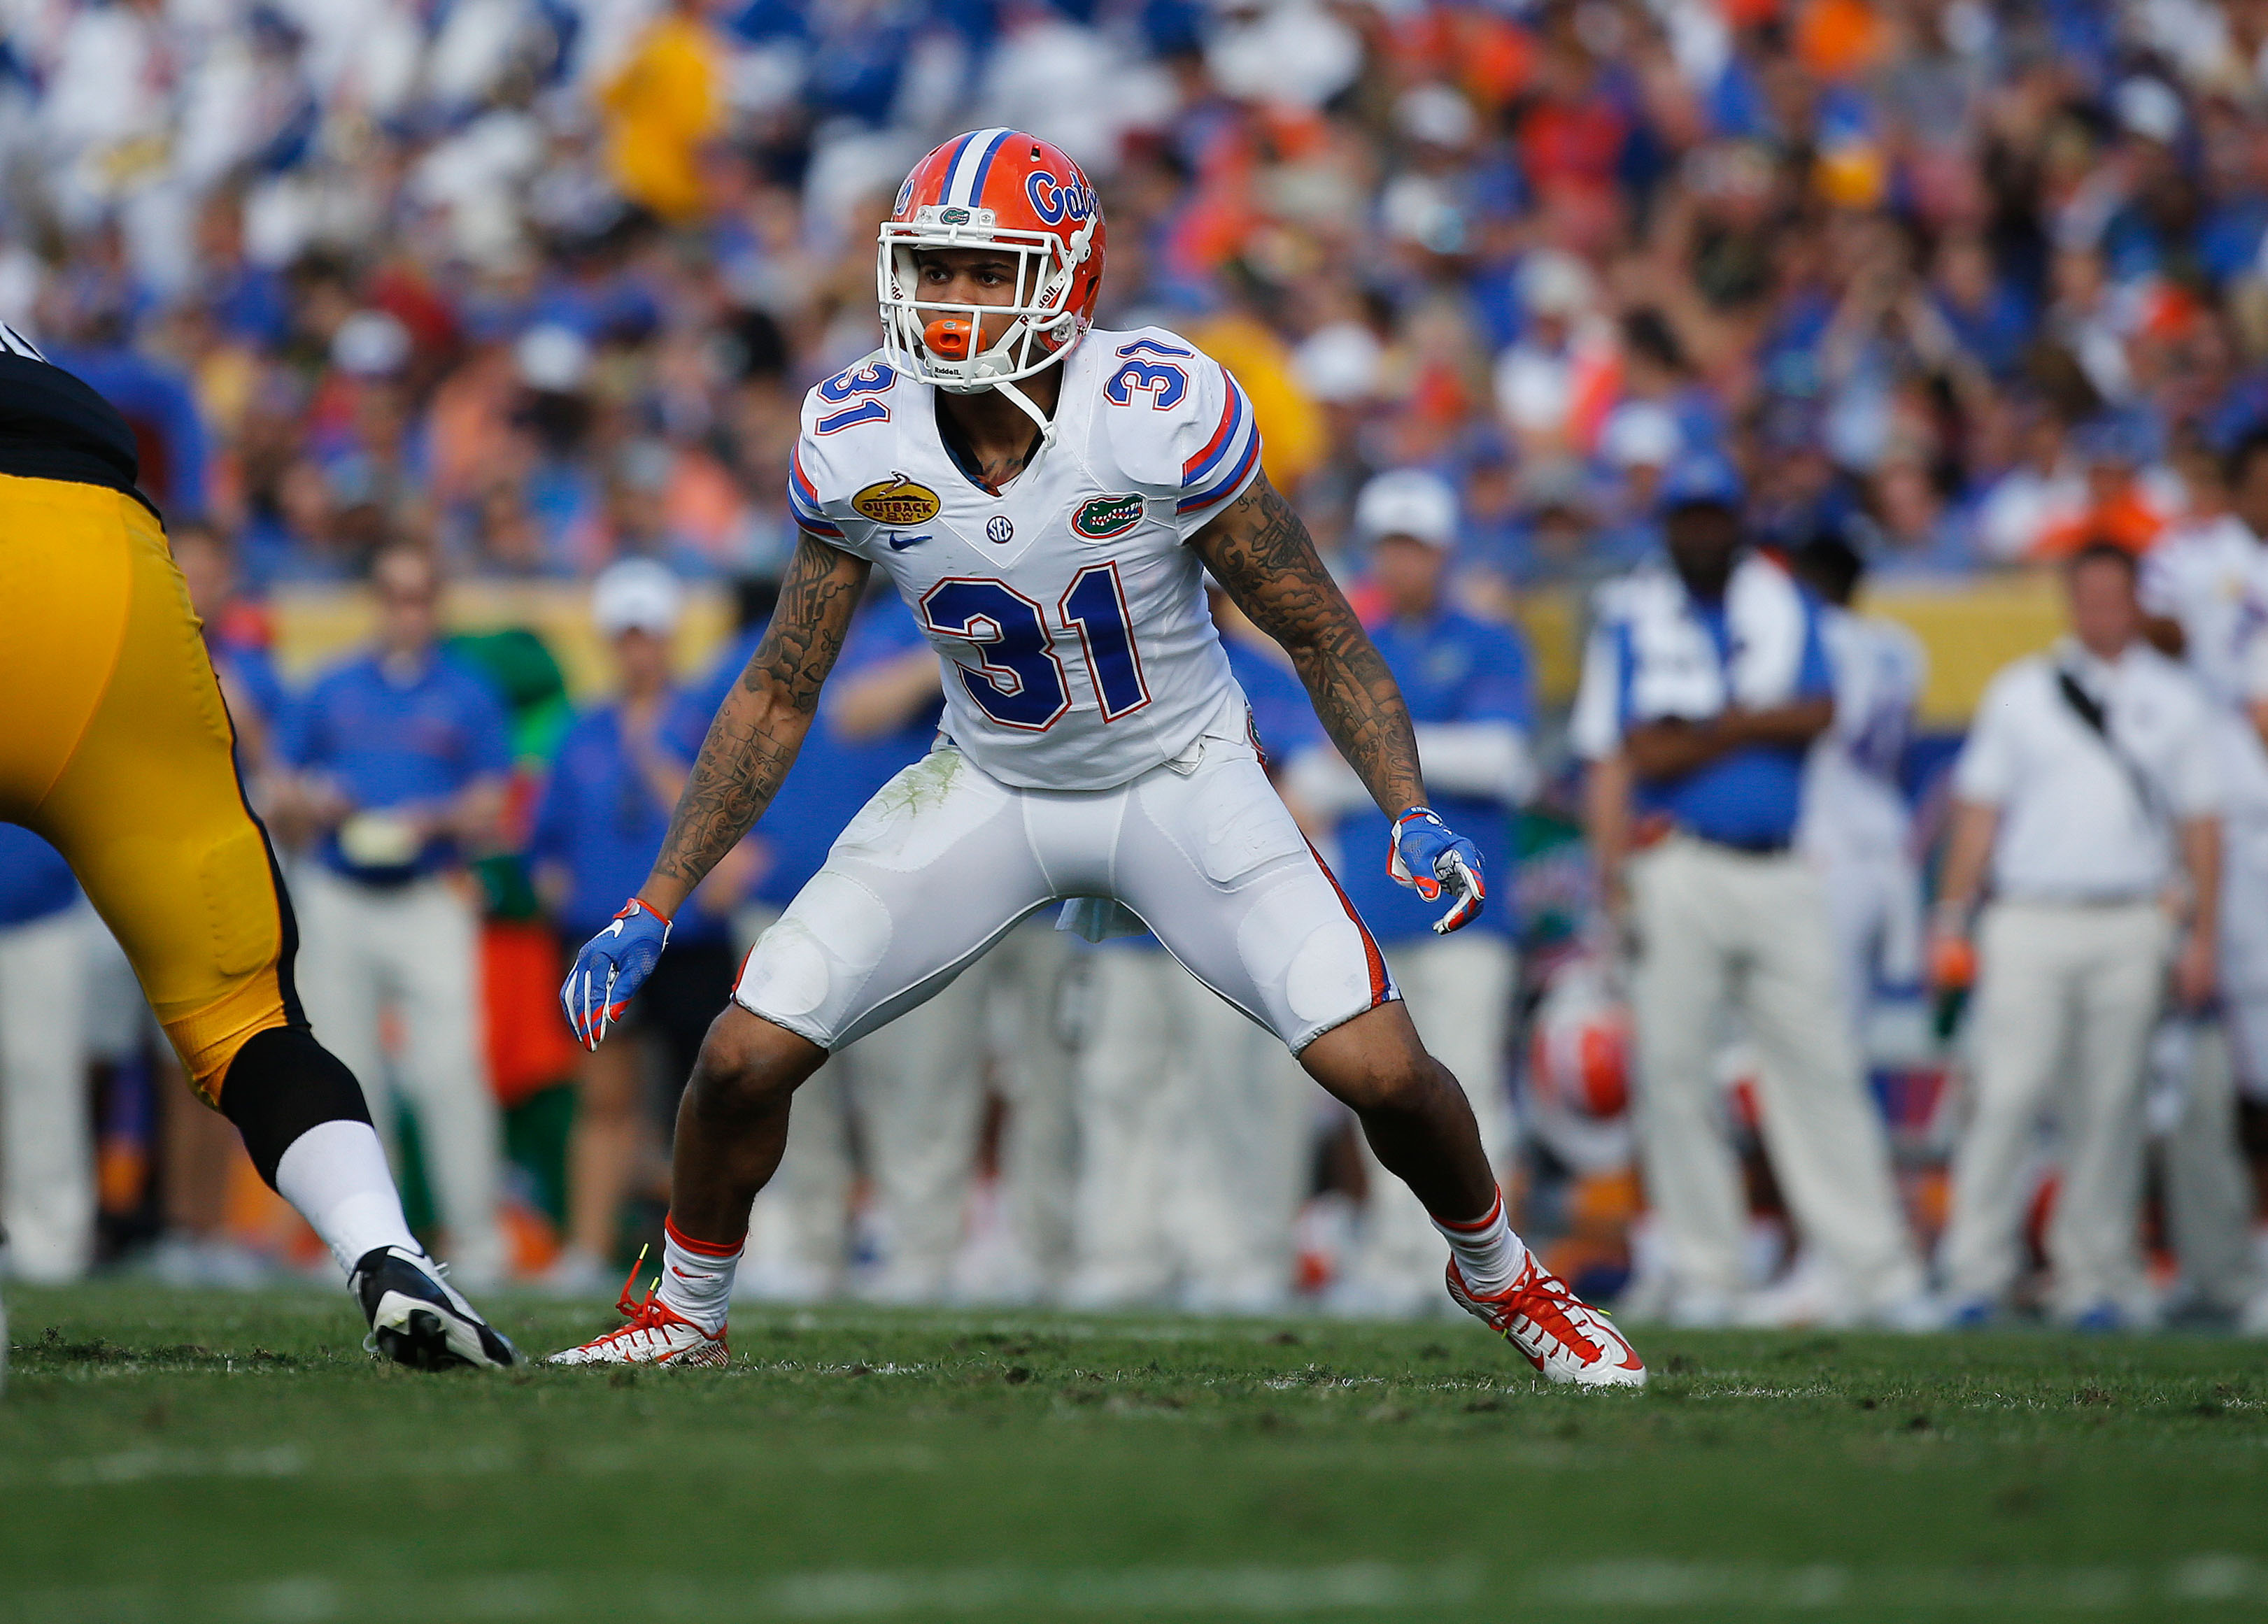 Jan 2, 2017; Tampa , FL, USA; Florida Gators defensive back Teez Tabor (31) rushes against the Florida Gators during the second quarter at Raymond James Stadium. Mandatory Credit: Kim Klement-USA TODAY Sports